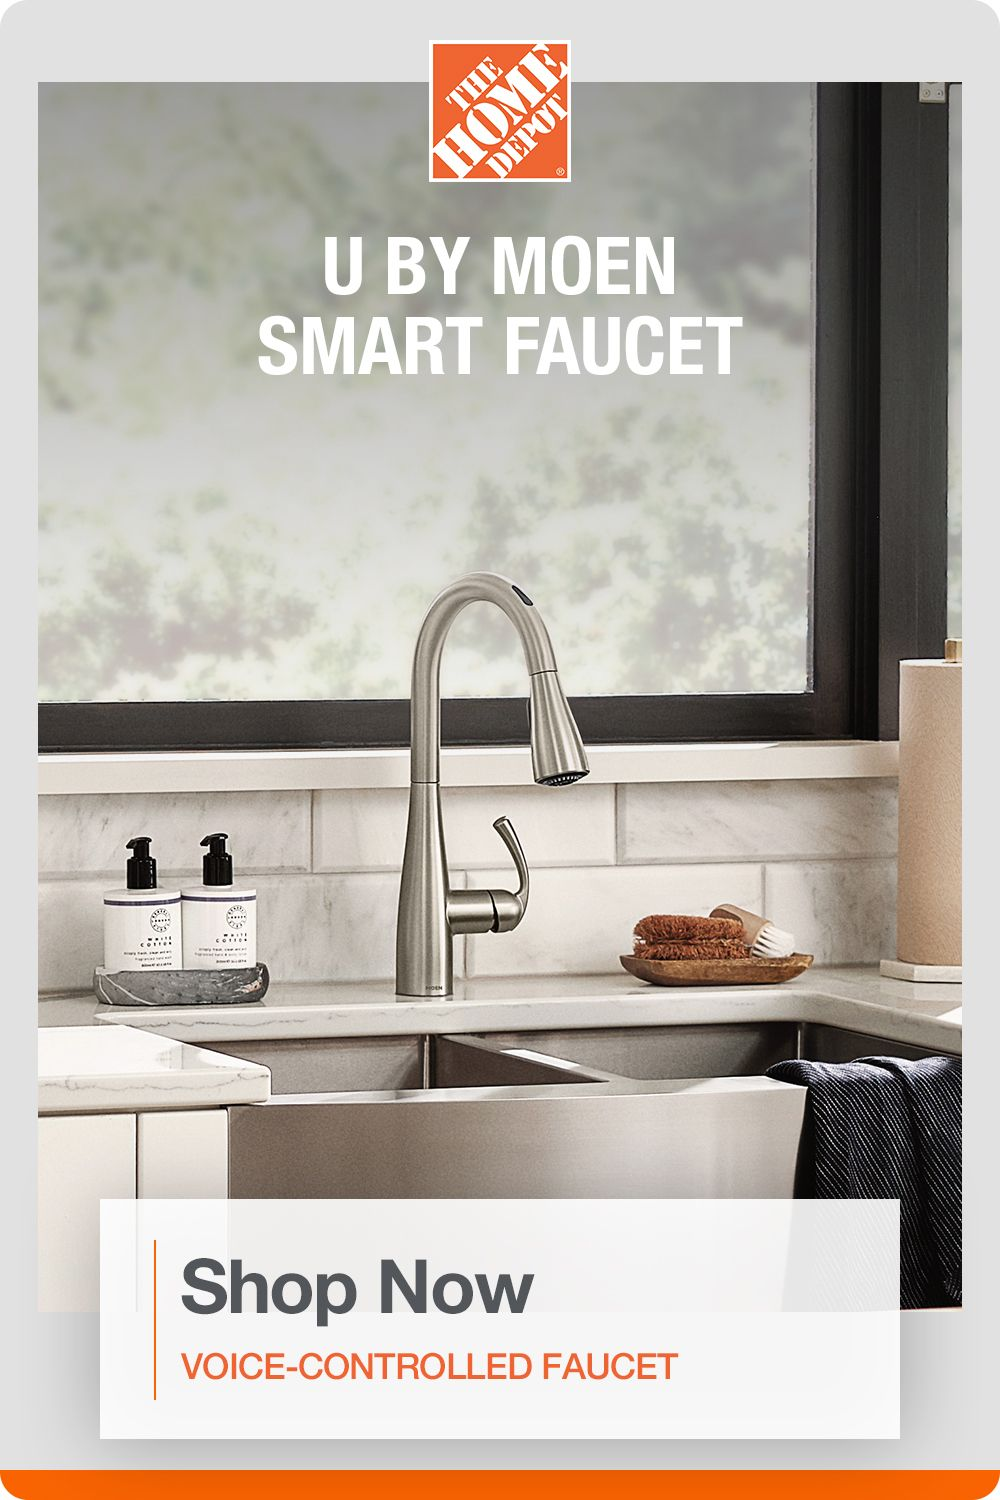 Moen U By Essie Single Handle Pull Down Sprayer Smart Kitchen Faucet With Voice Control In Spot Resist Stainless 87014evsrs The Home Depot In 2020 Smart Kitchen Kitchen Faucet Smart Faucet